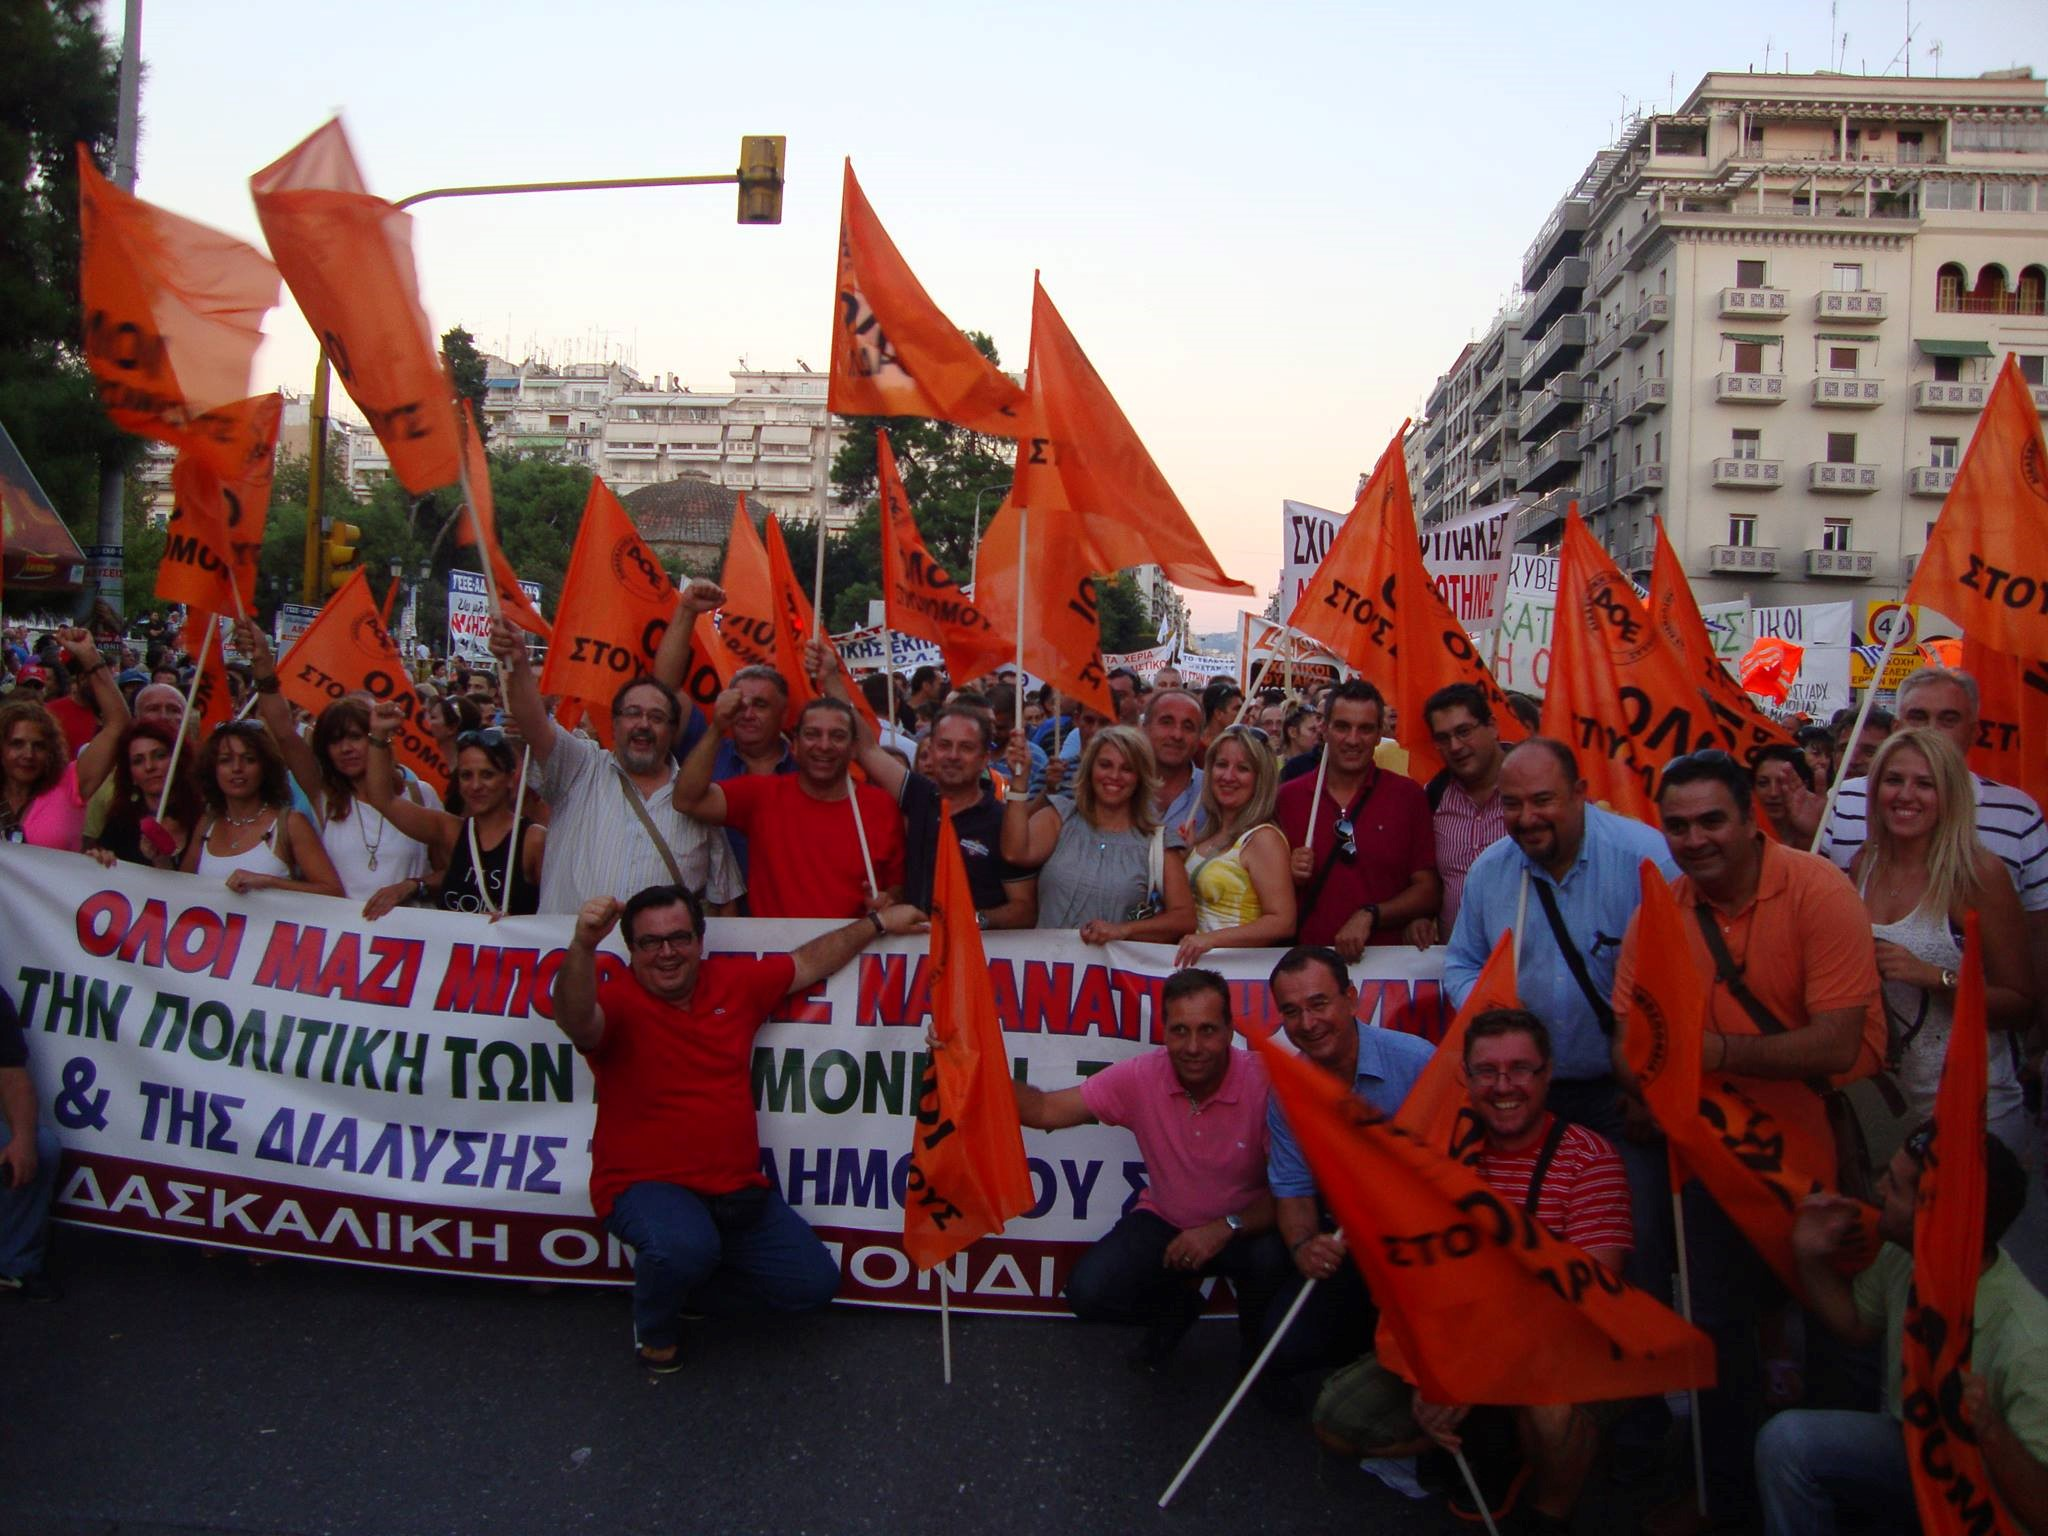 March involving DOE in Greece